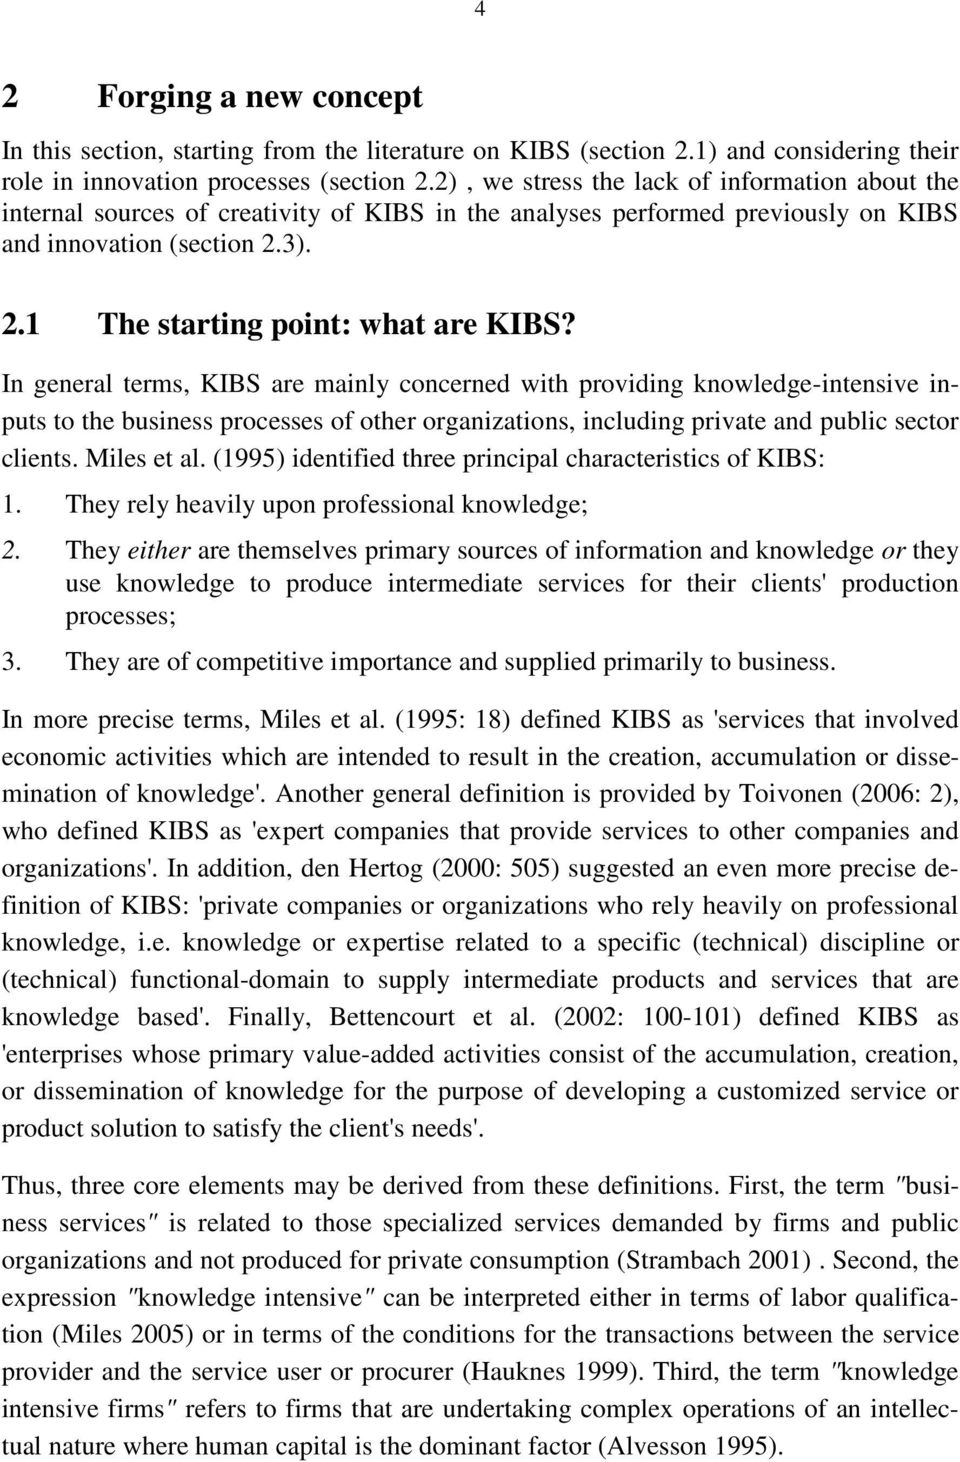 In general terms, KIBS are mainly concerned with providing knowledge-intensive inputs to the business processes of other organizations, including private and public sector clients. Miles et al.